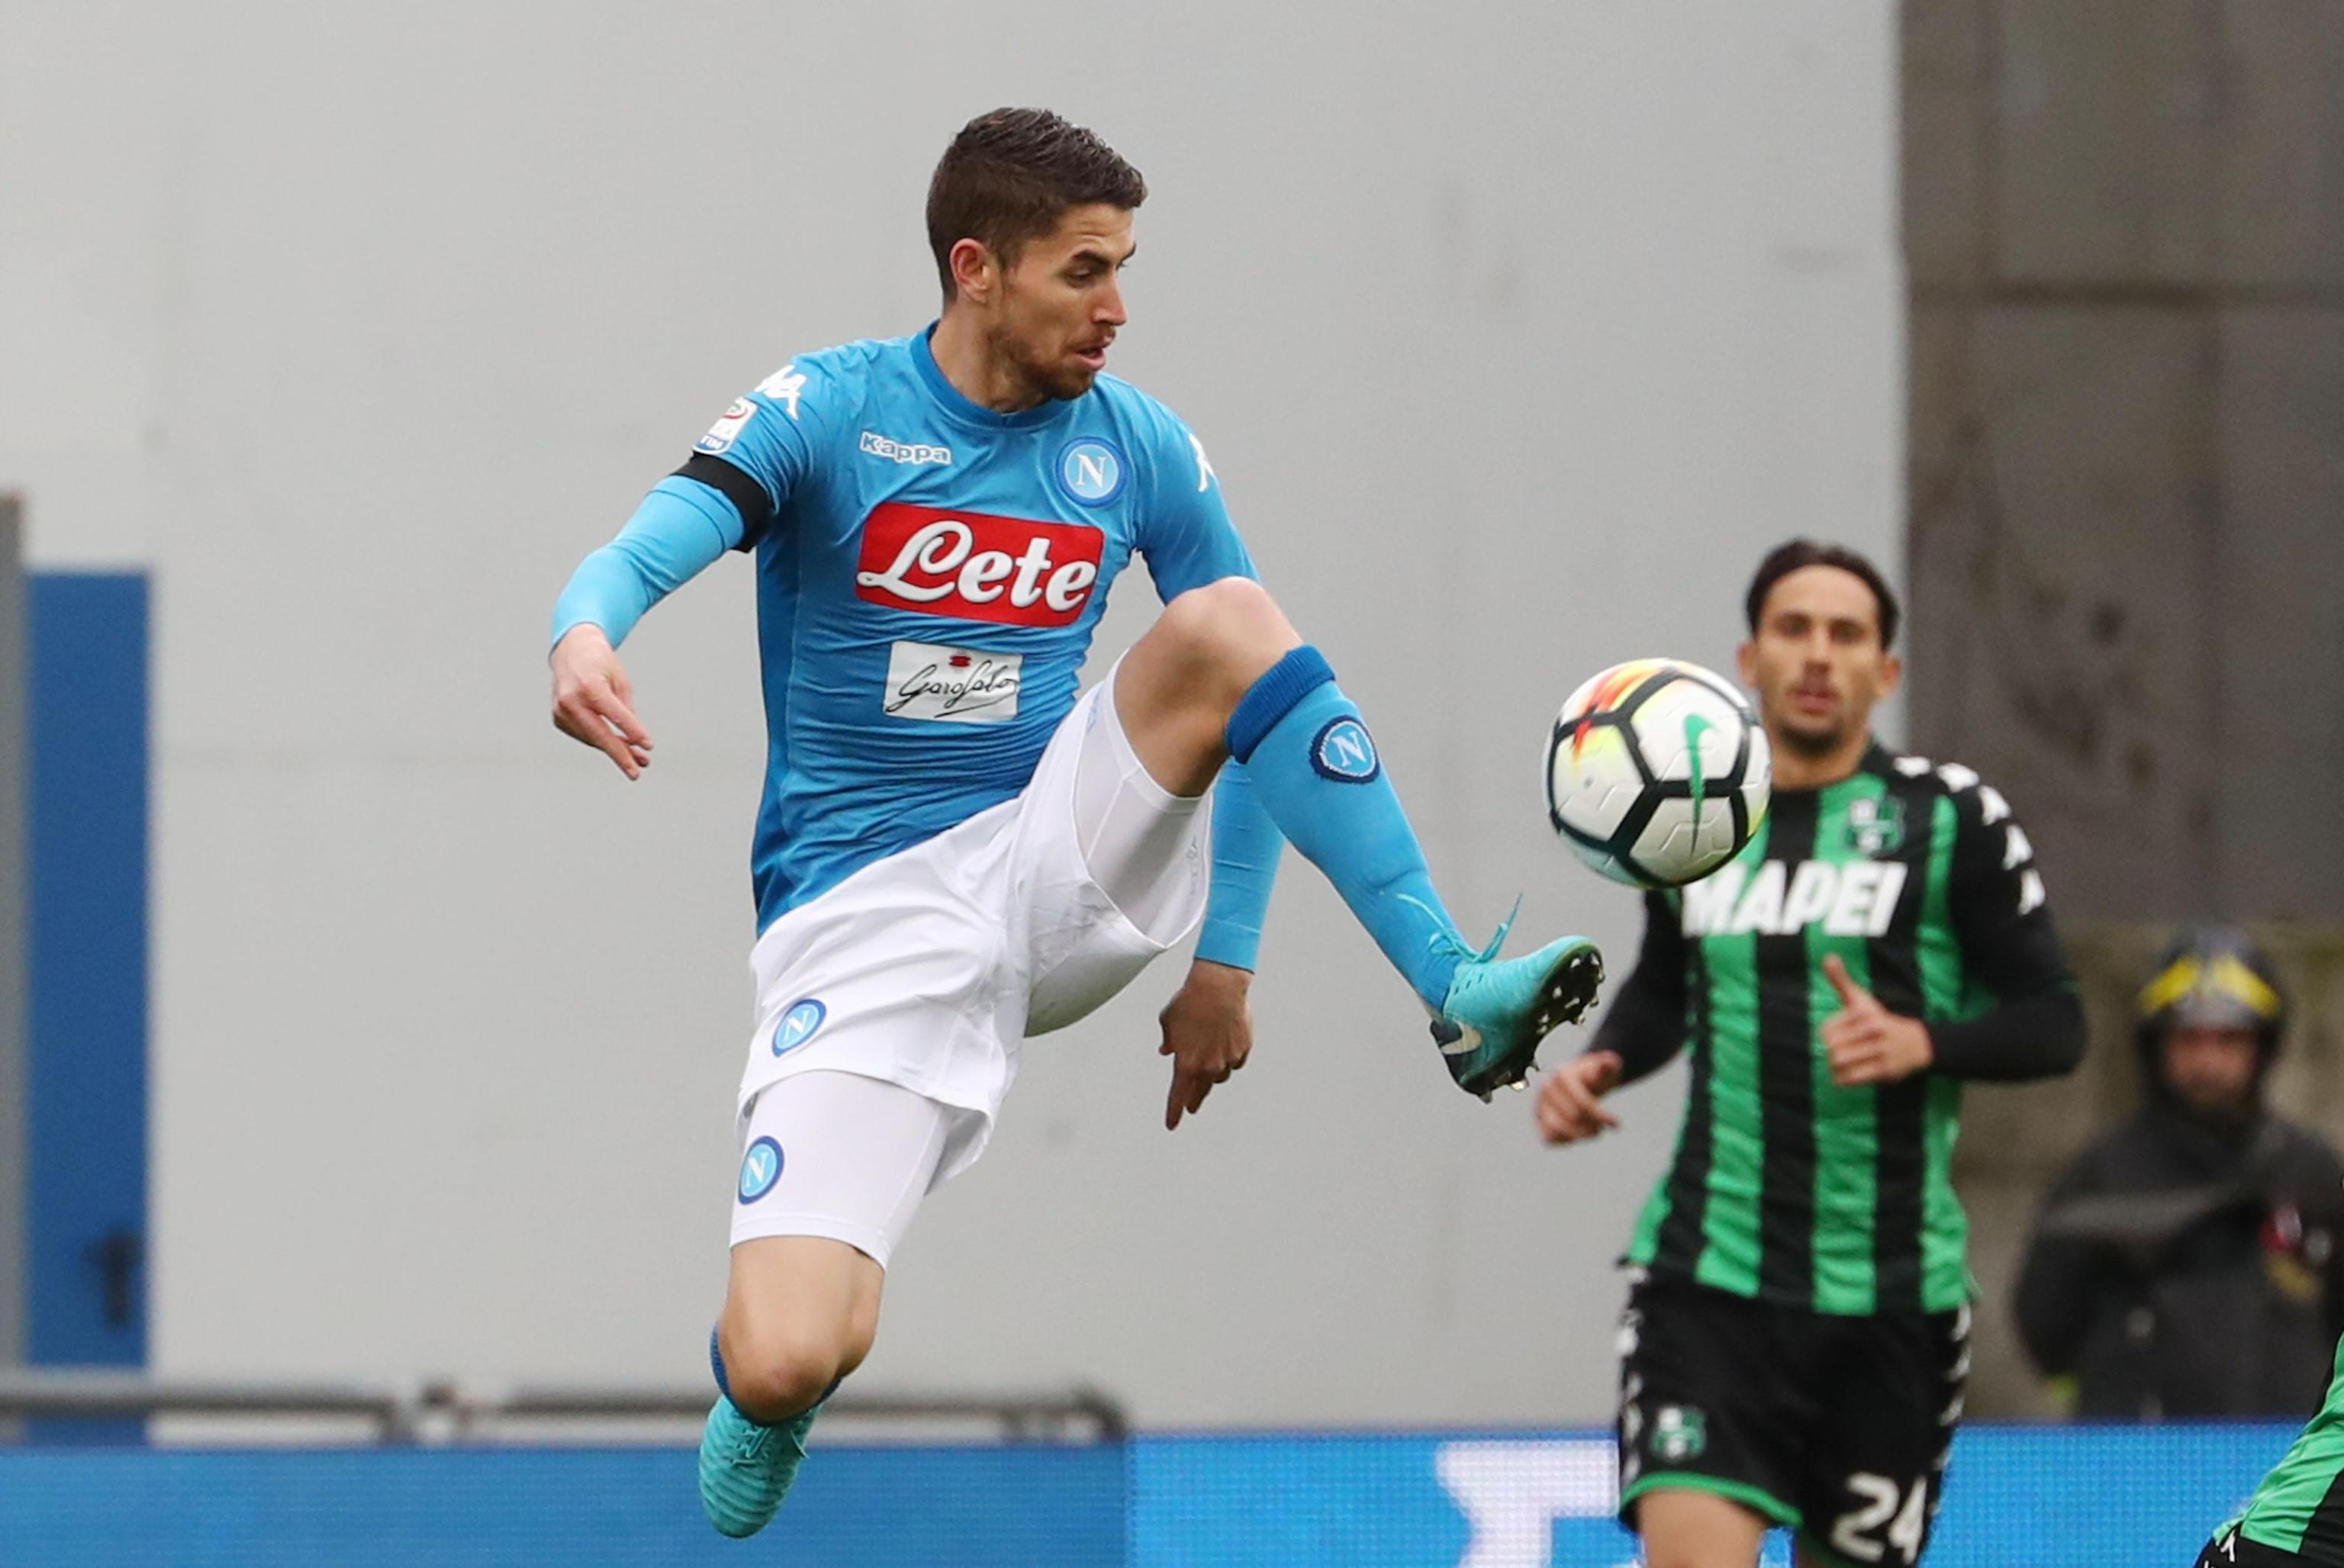 City are yet to agree a fee with Napoli for the midfielder